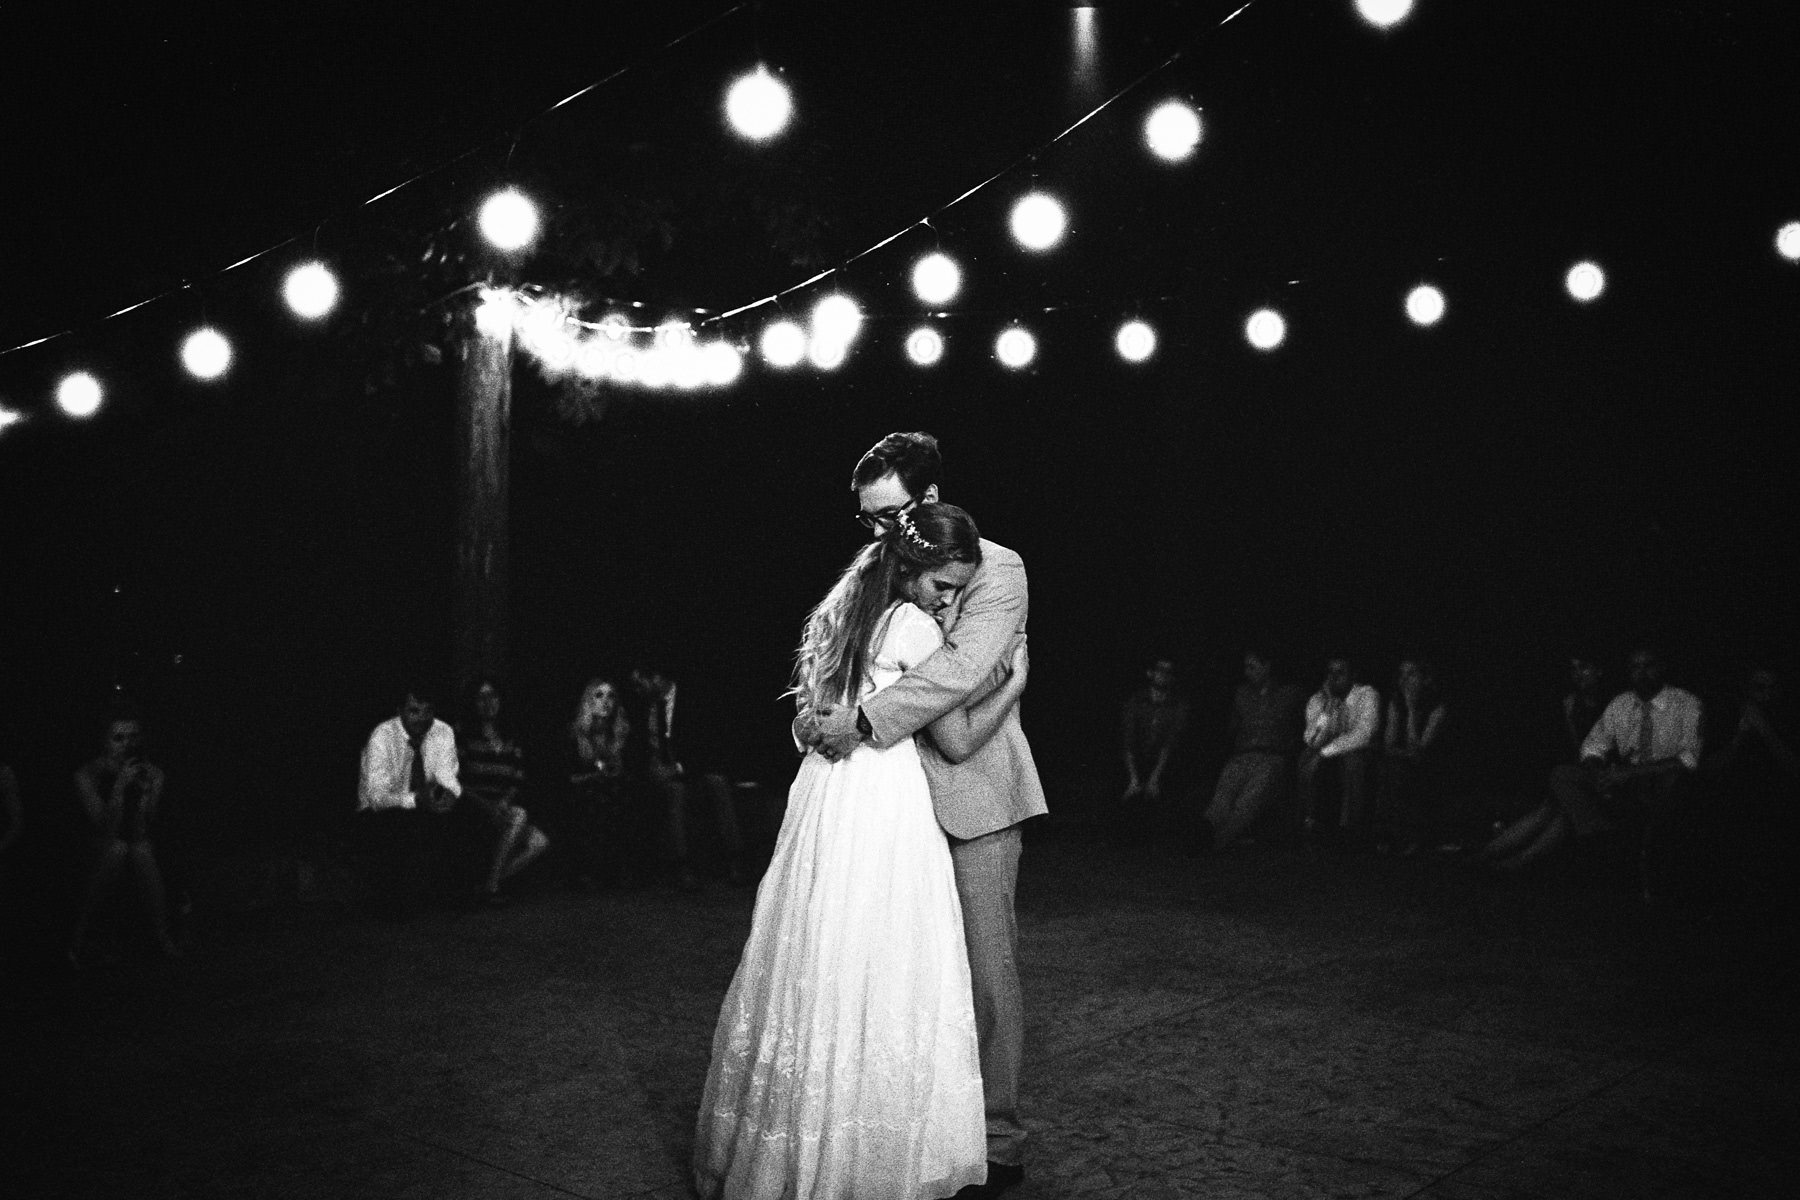 303_James P. Davis Hall Outdoor Wedding on 35mm Film Kansas City, Missouri_Kindling Wedding Photography.JPG